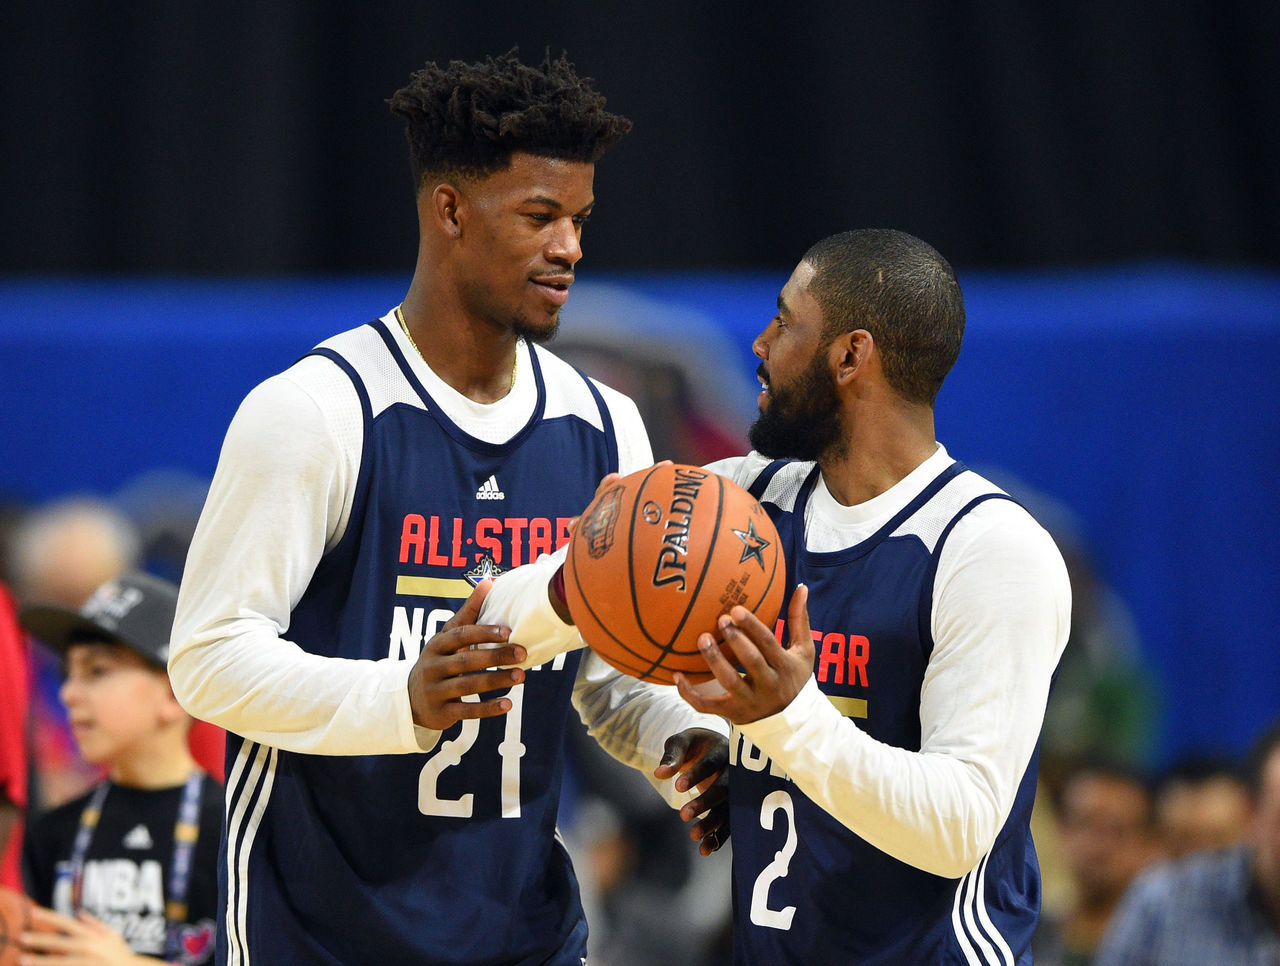 Cropped 2017 02 18t185211z 1571734205 nocid rtrmadp 3 nba all star practice